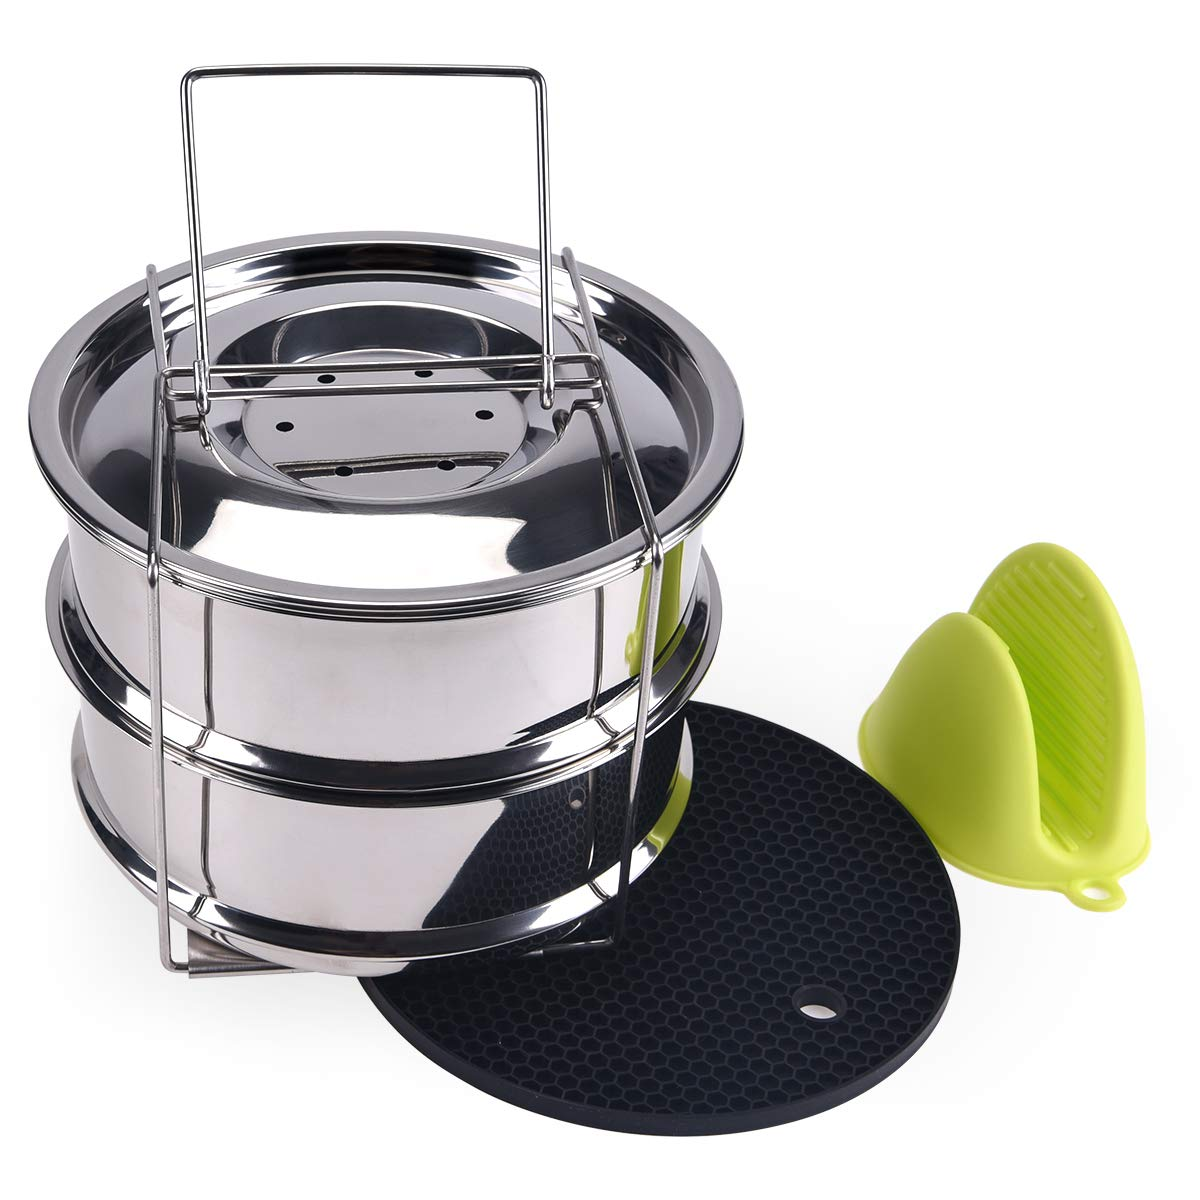 Stackable Steamer Insert Pans, Stainless Steel Pressure Cooker Steamer Insert Pans with Sling Handle, Food Steamer for Instant Pot Accessories 5/6/8QT Food Steamer - Two Interchangeable Lids